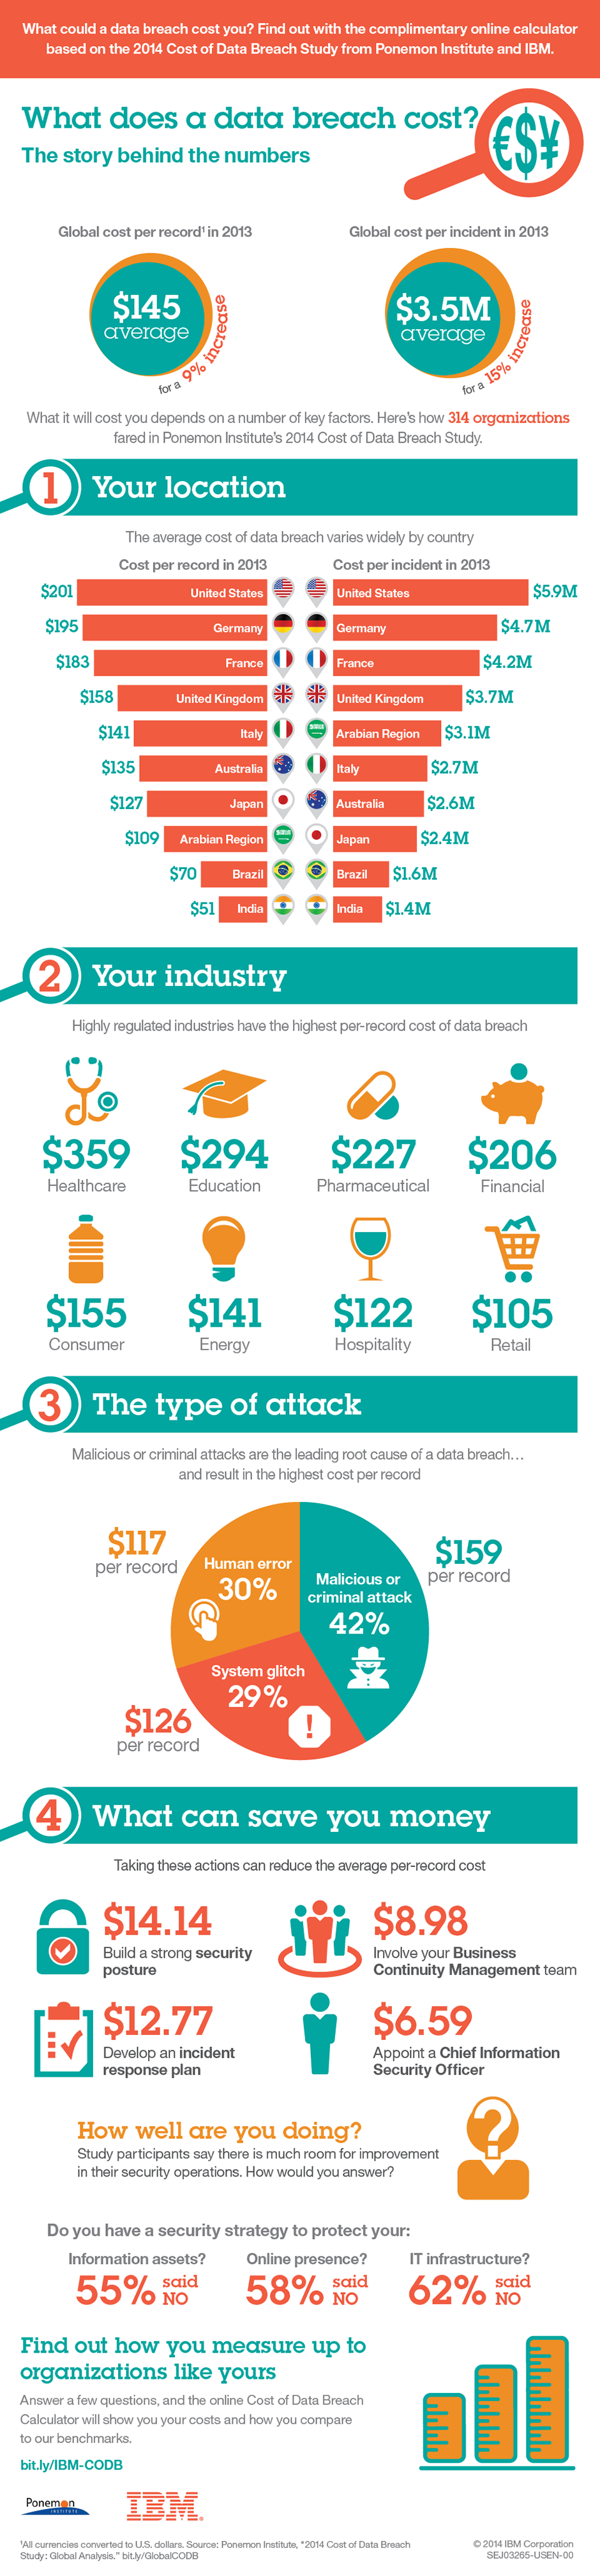 Data breach risk infographic by IBM